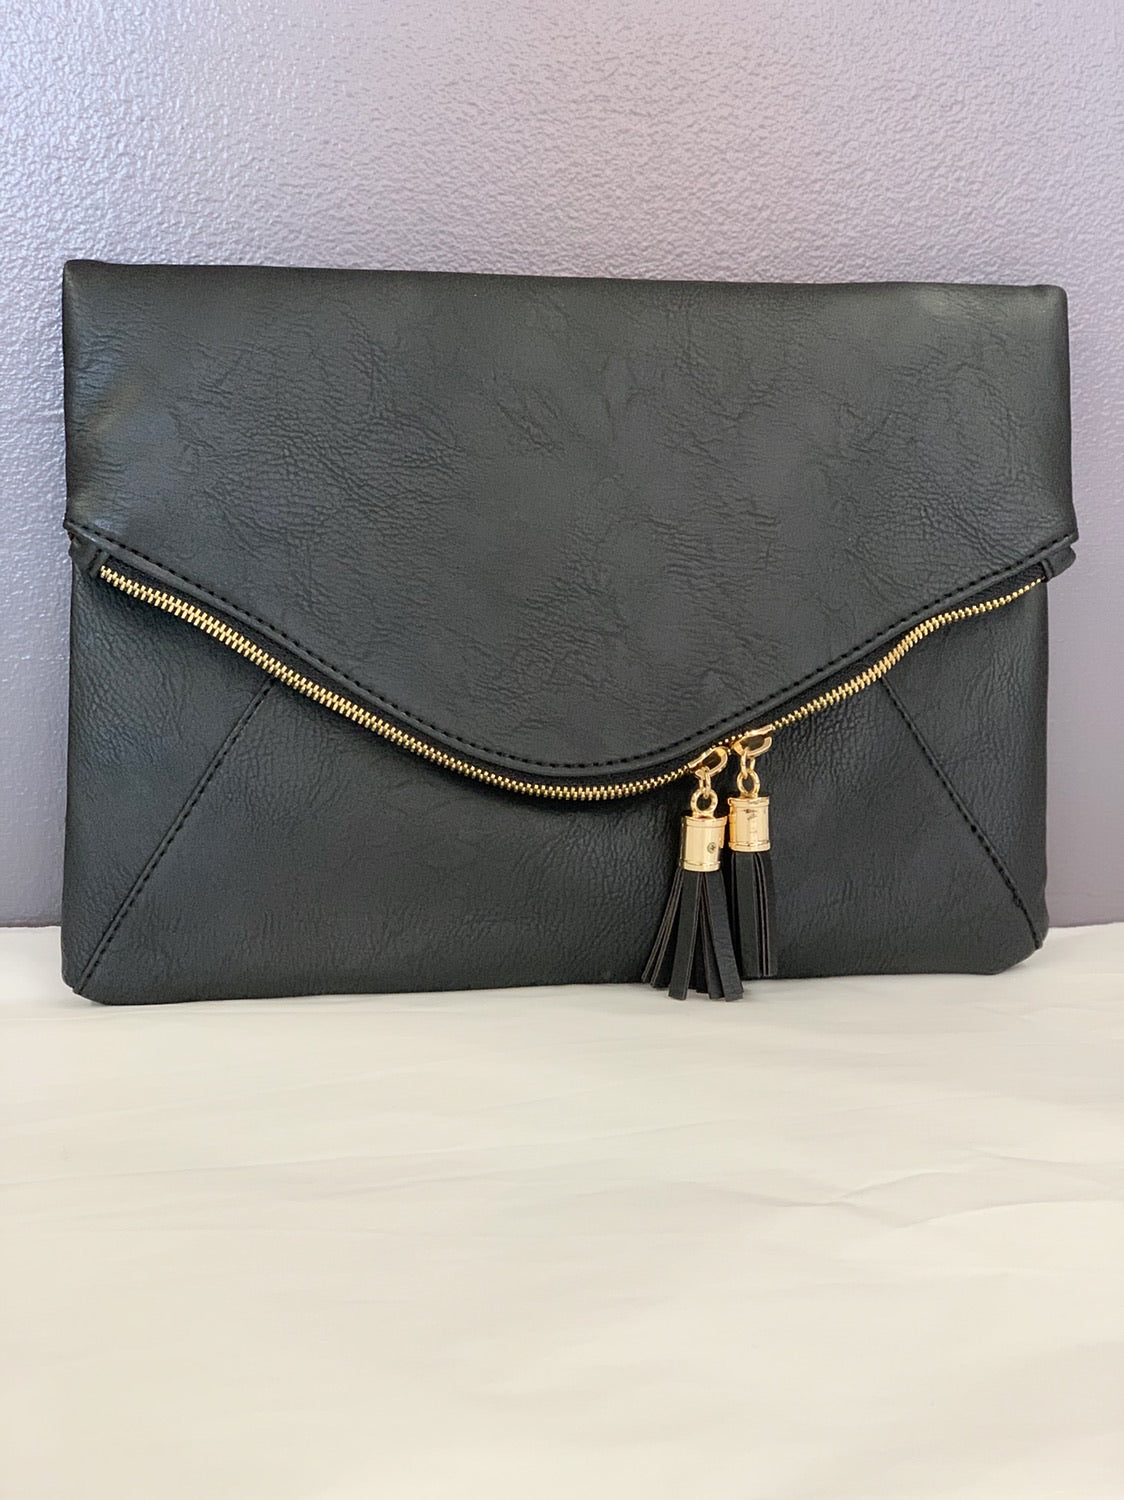 a6a2811ec459 Bria Bella   Co - Black Envelope Clutch ...